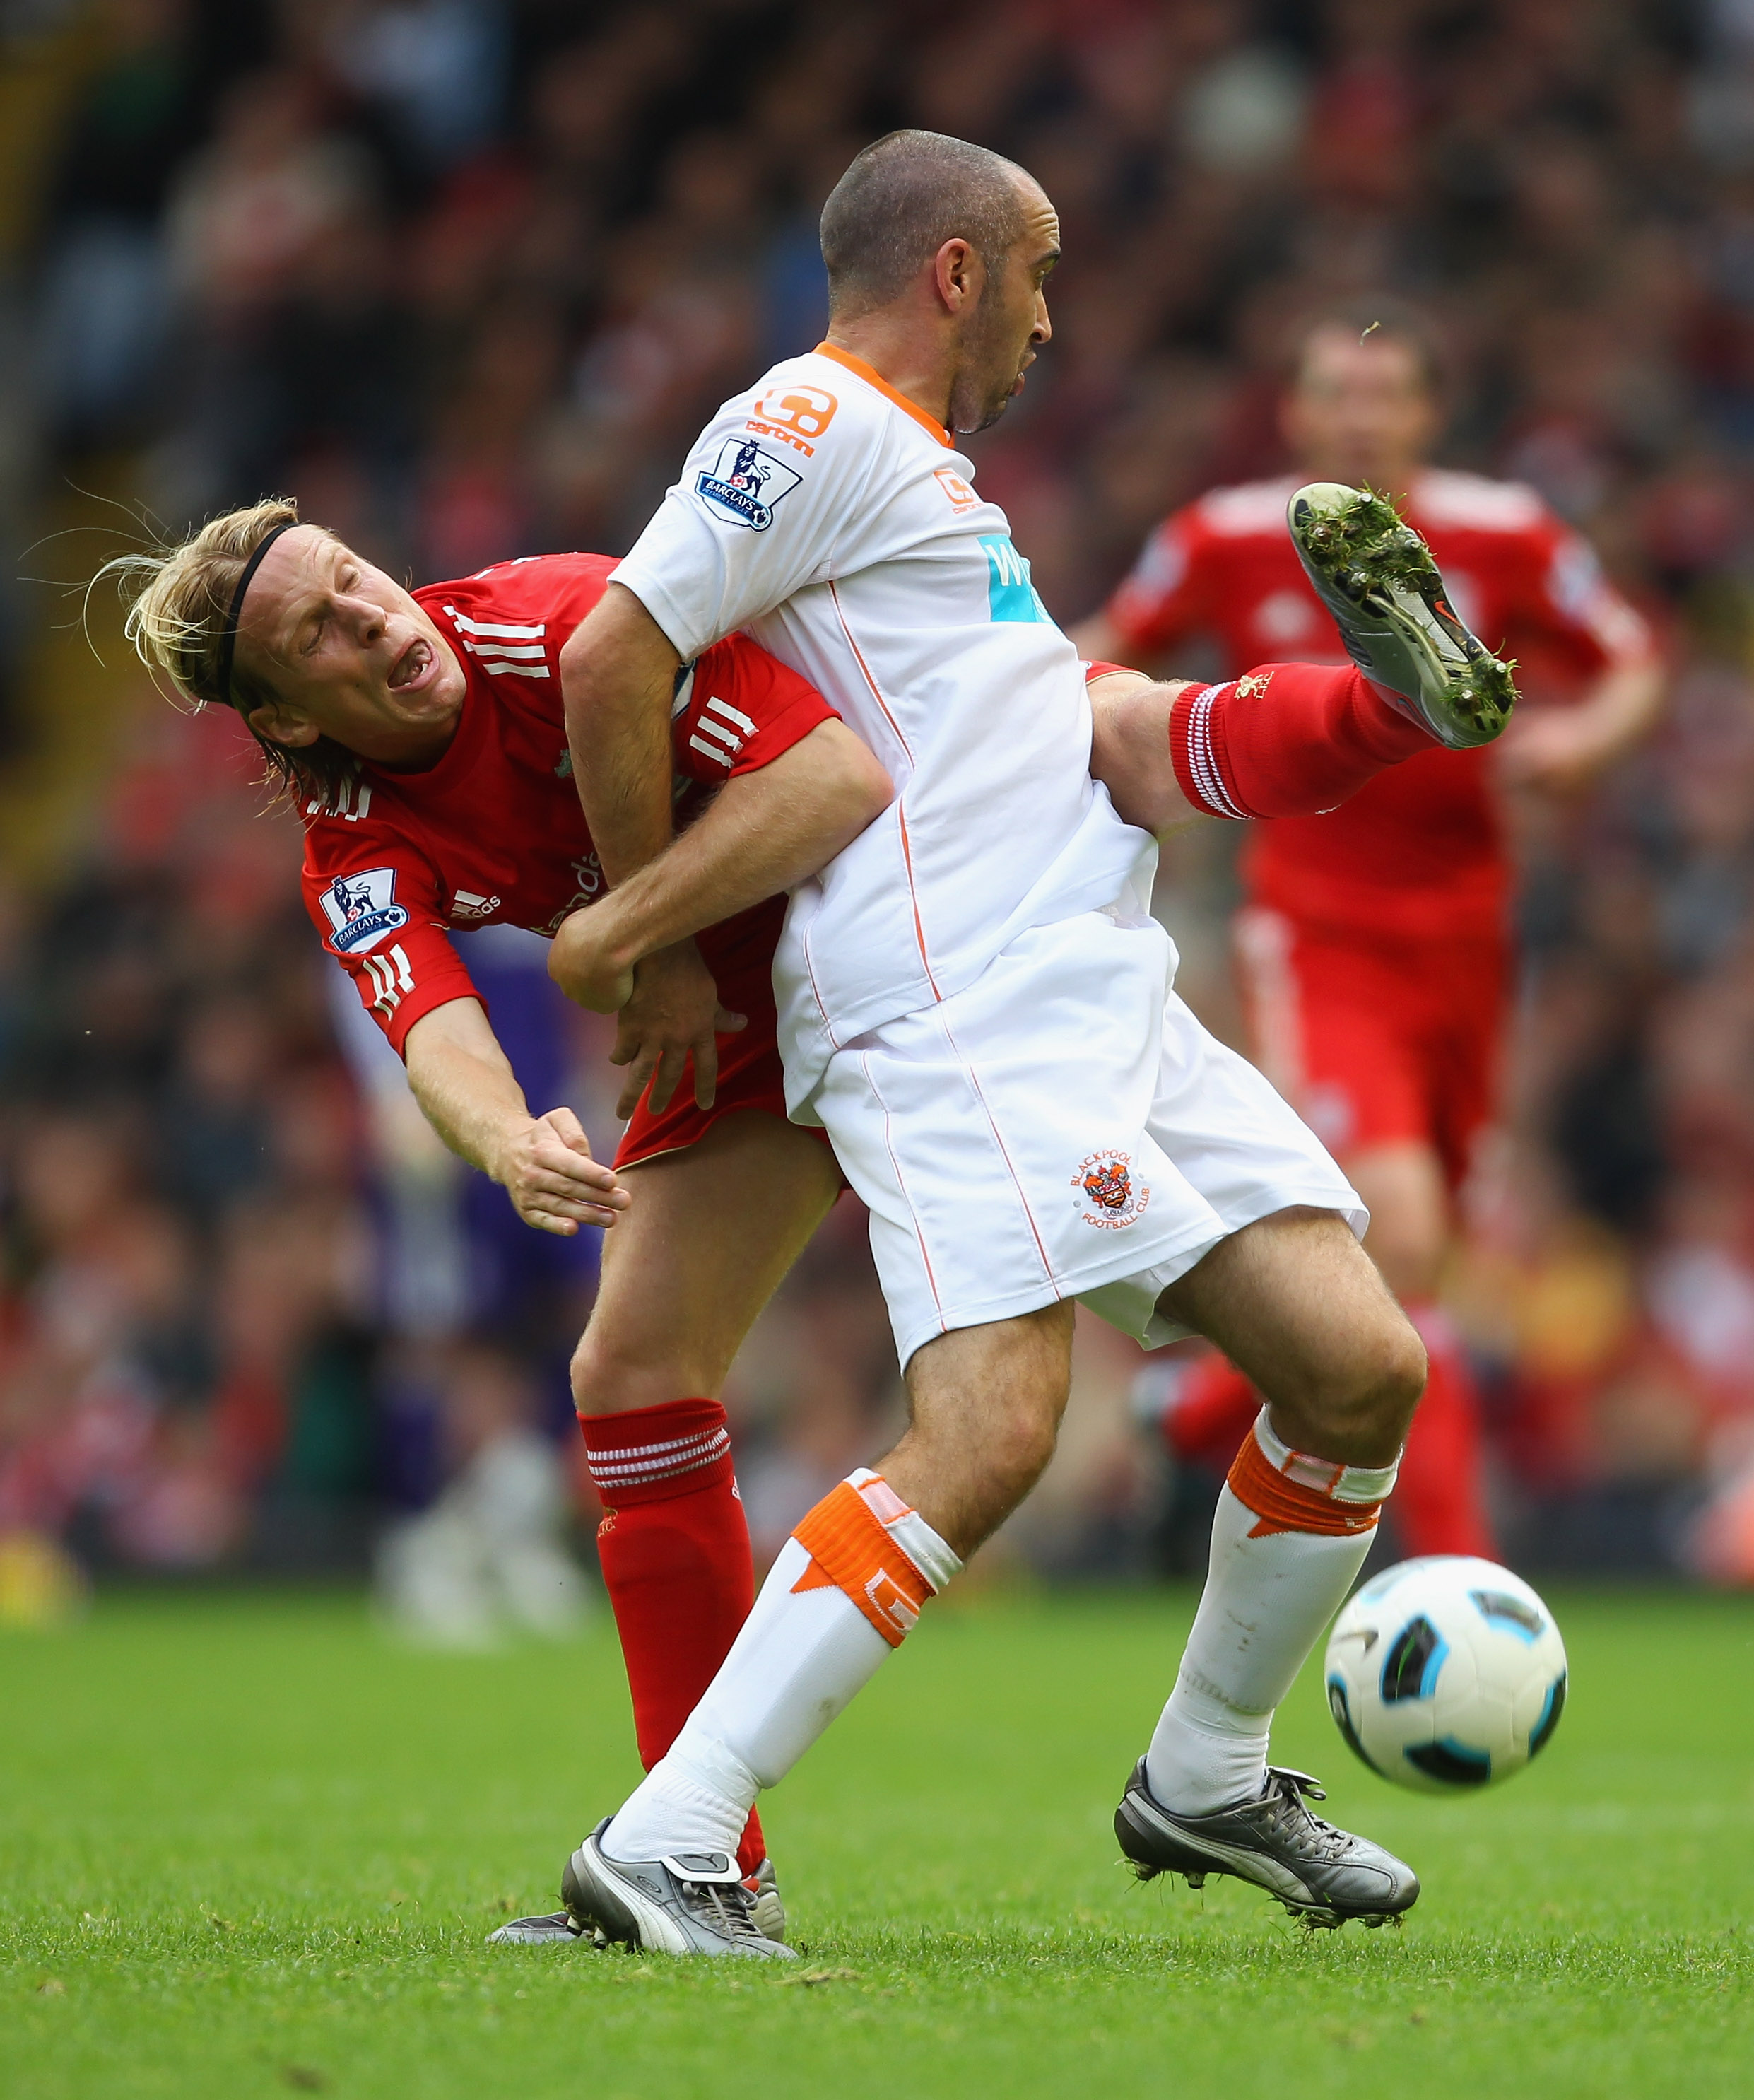 LIVERPOOL, ENGLAND - OCTOBER 03:  Gary Taylor-Fletcher of Blackpool holds off a challenge from Christian Poulsen during the Barclays Premier League match between Liverpool and Blackpool at Anfield on October 3, 2010 in Liverpool, England.  (Photo by Alex